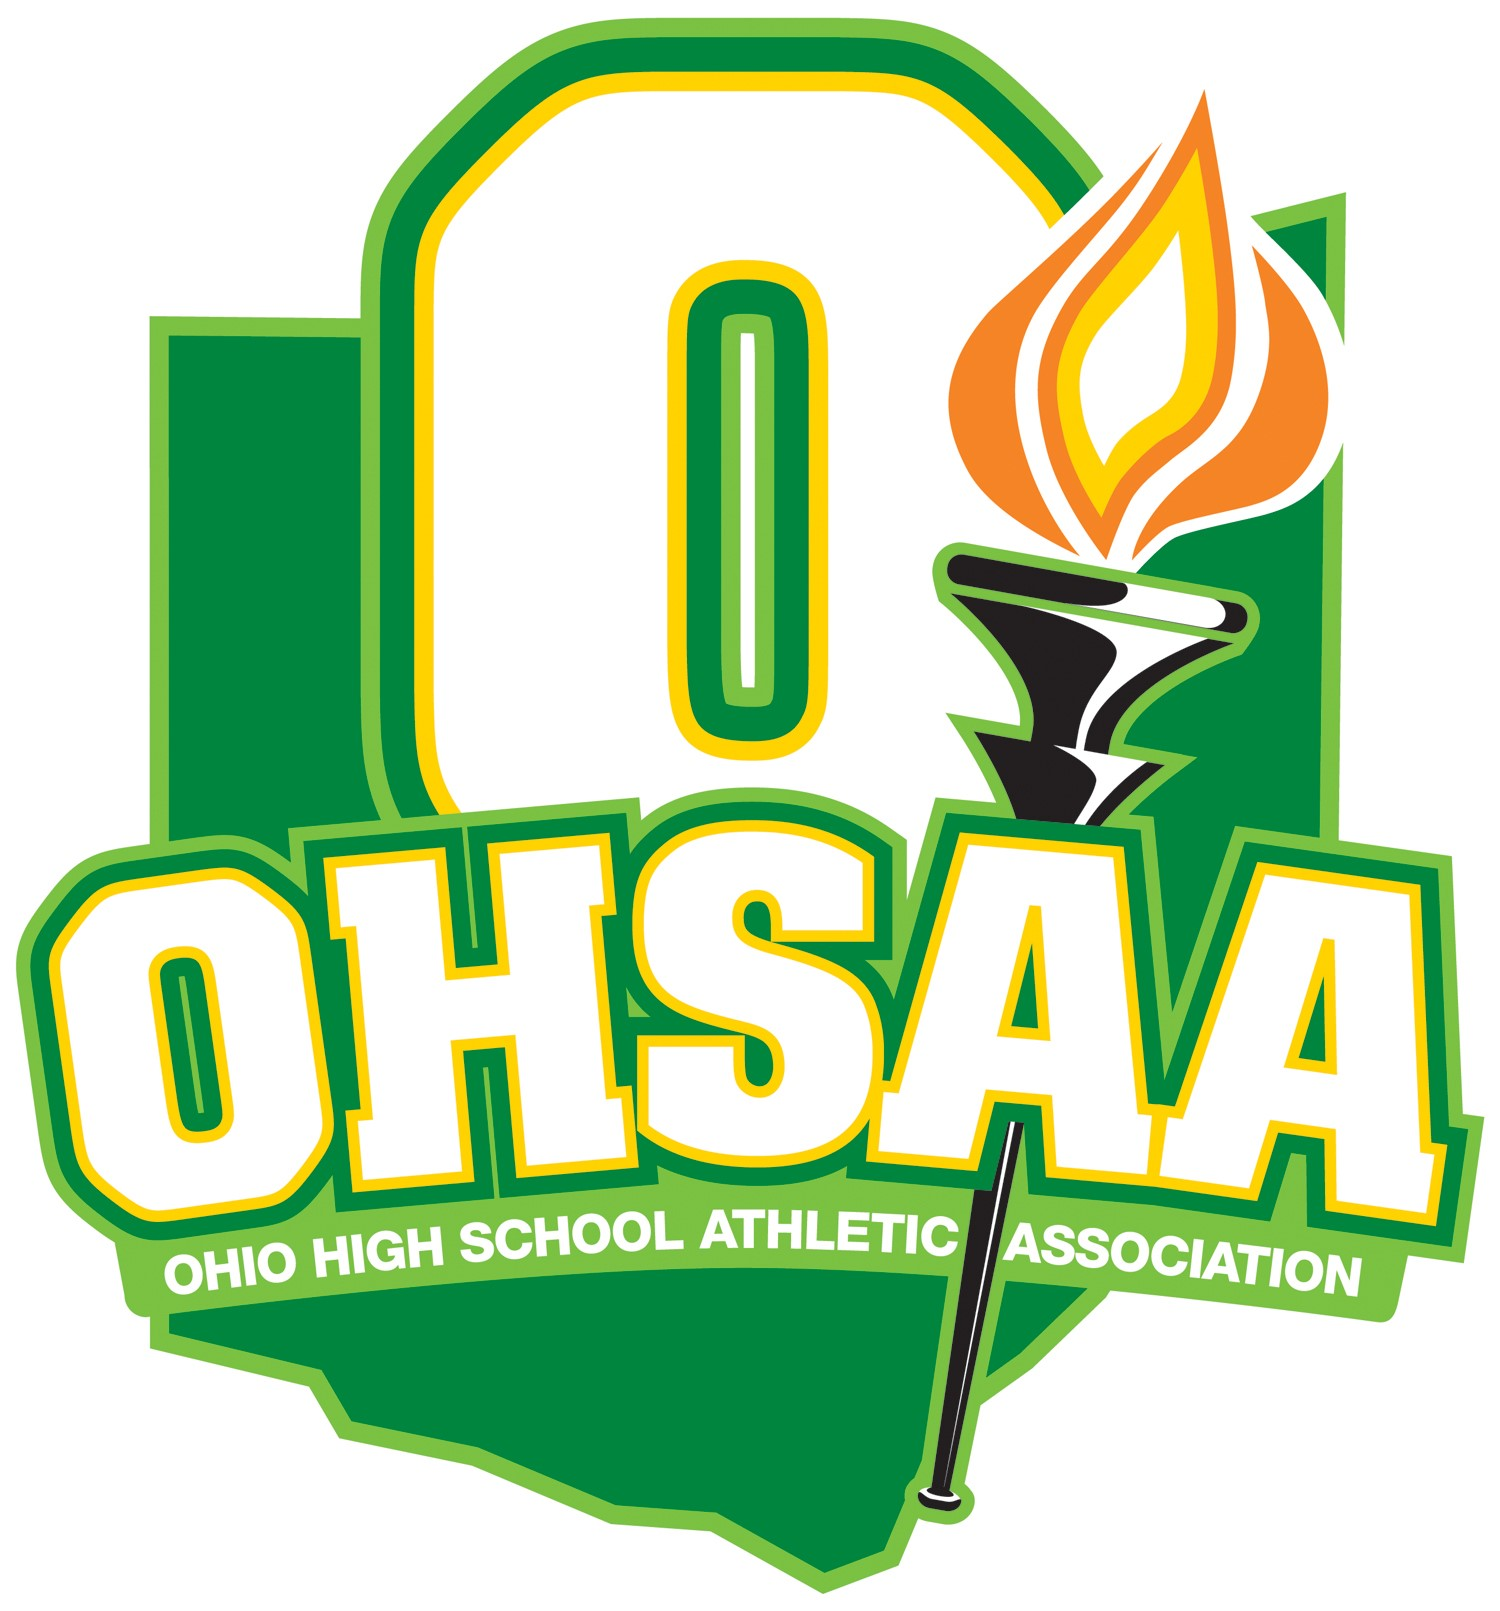 Live Stream for OHSAA play-off Football Game 10/24